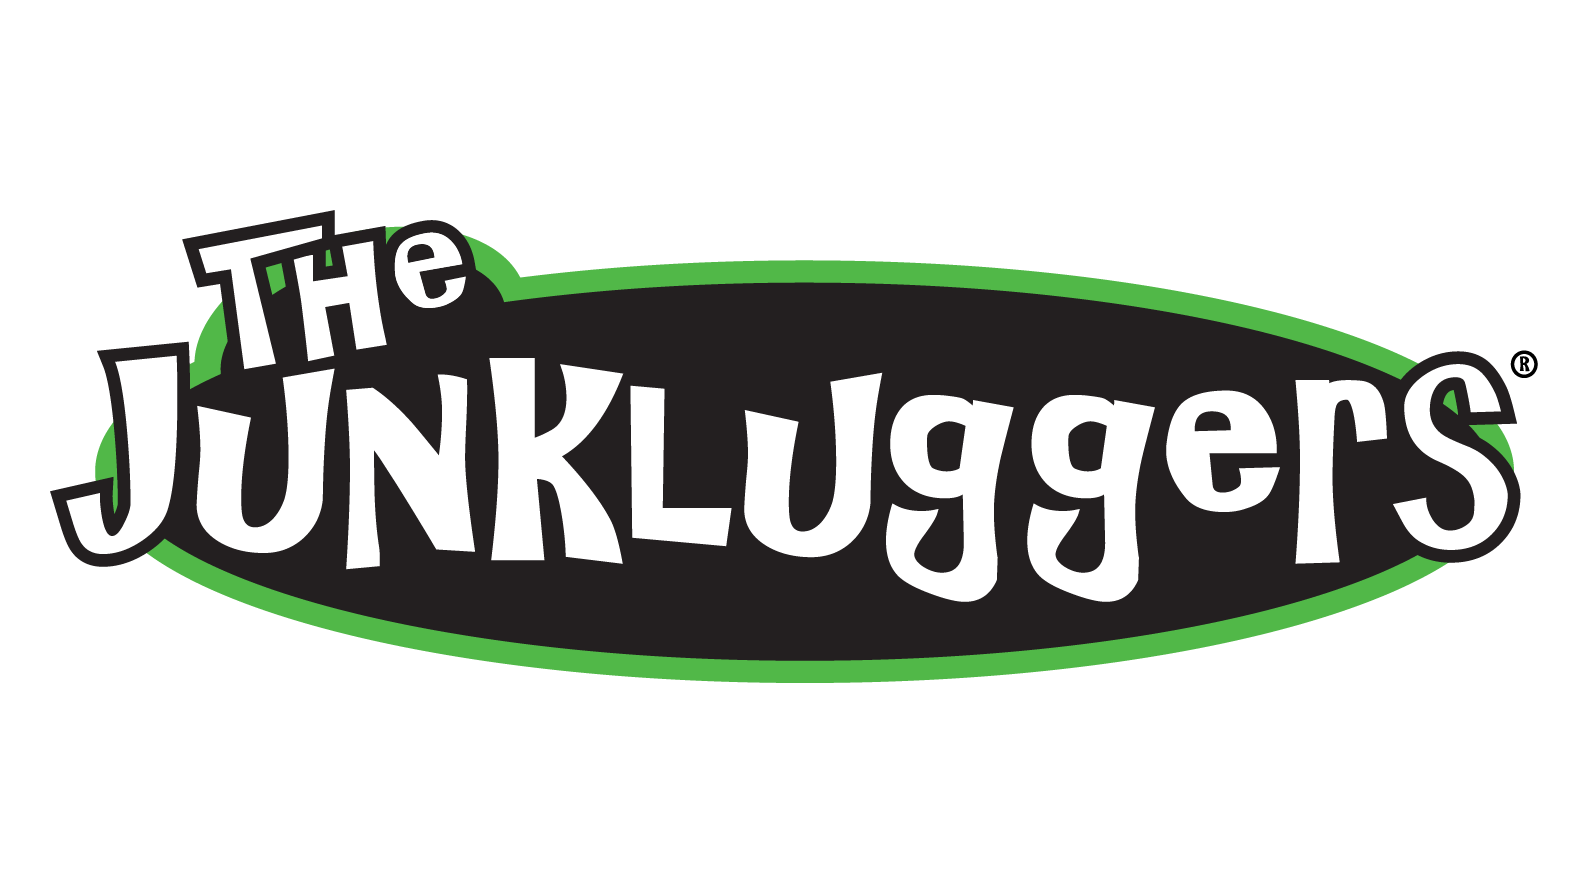 The Junkluggers of New Haven County Logo